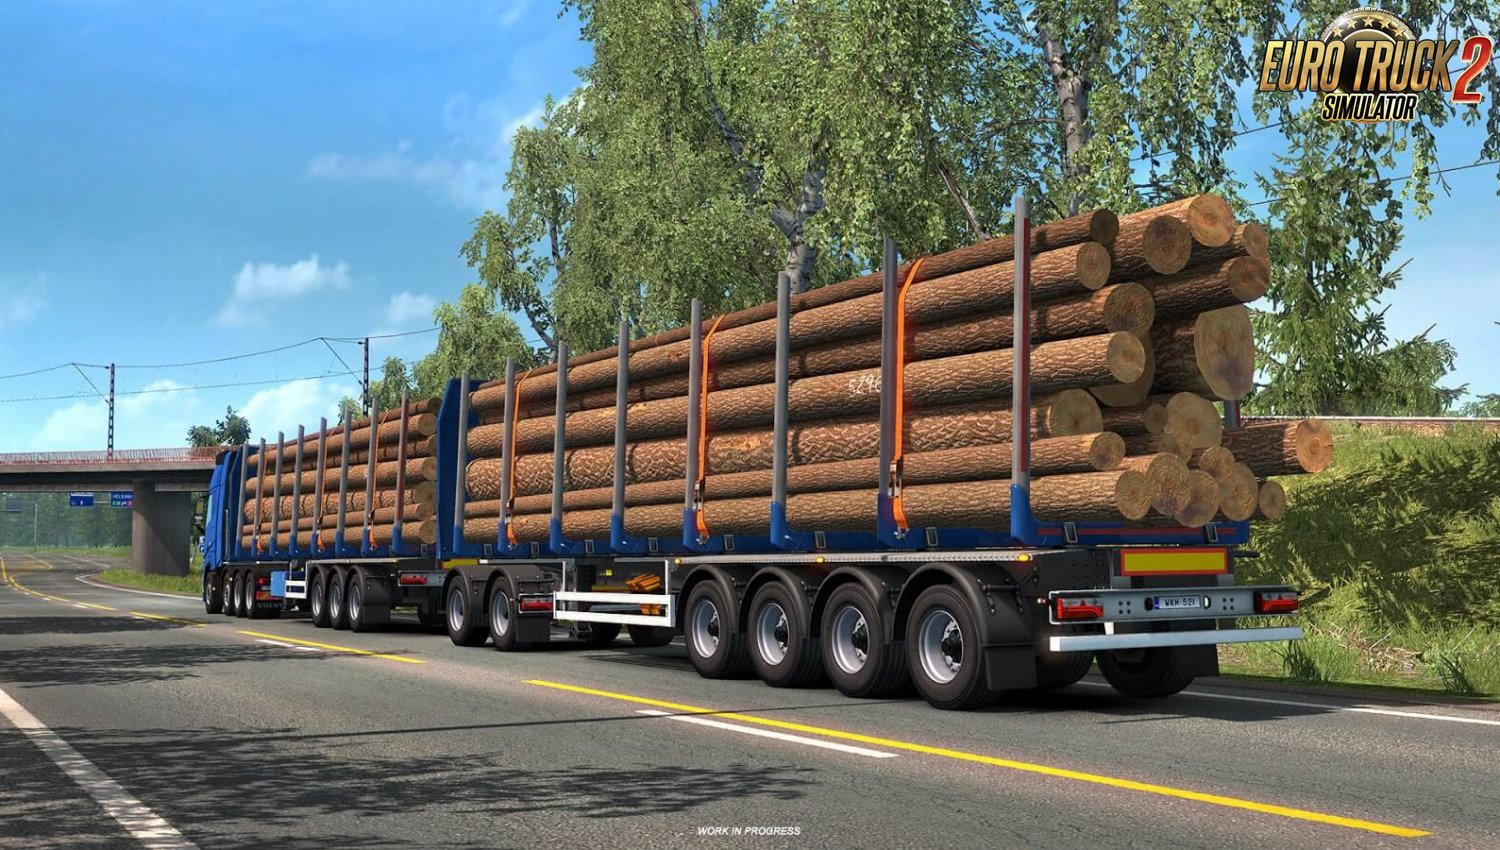 Trailer News Part 2 for Euro Truck Simulator 2